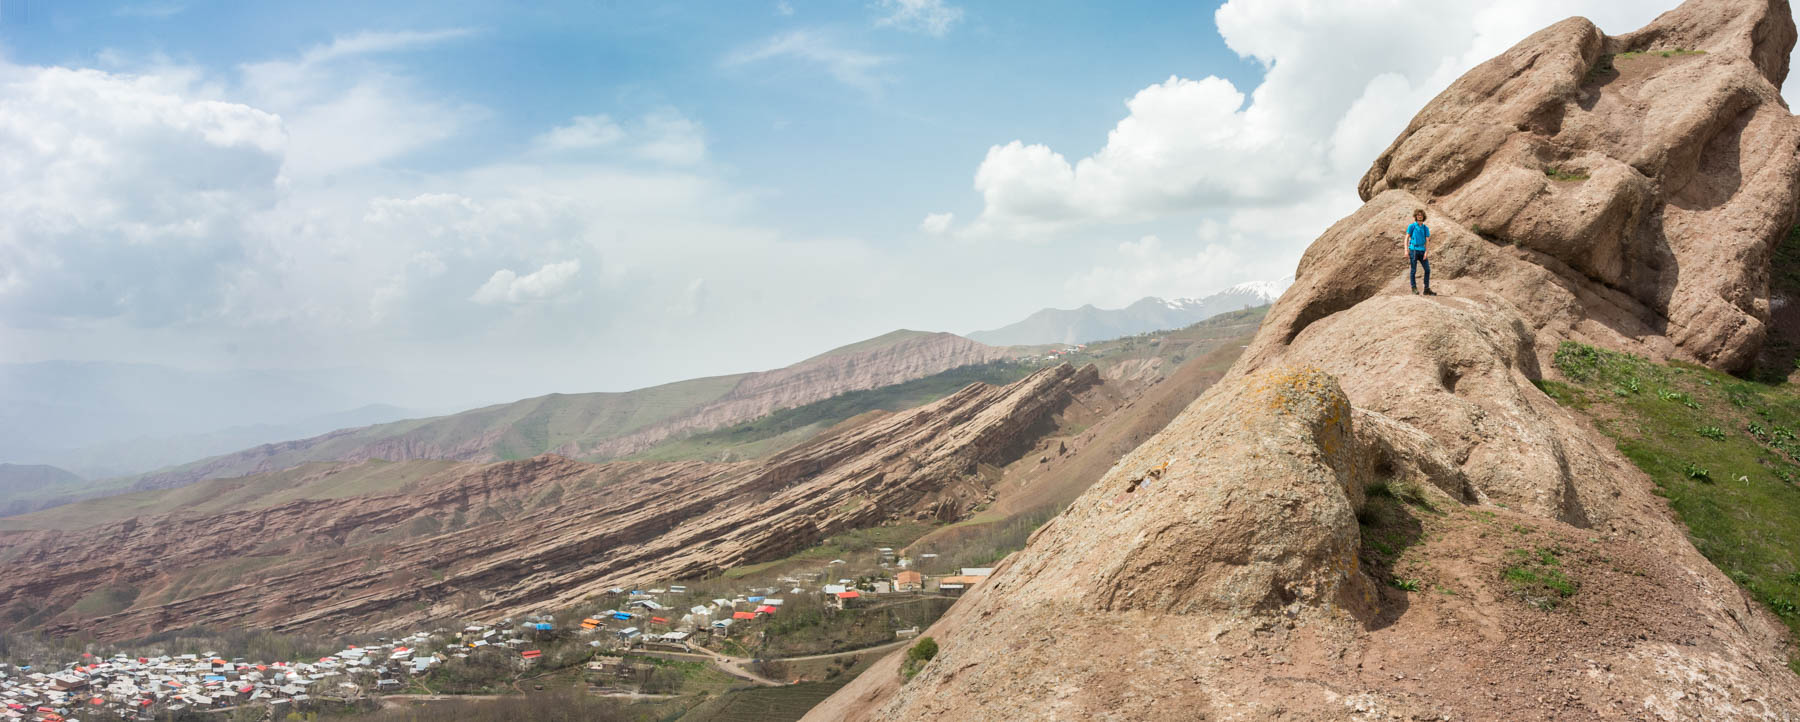 A panoramic view of the Alamut Valley from Alamut Castle in Iran.